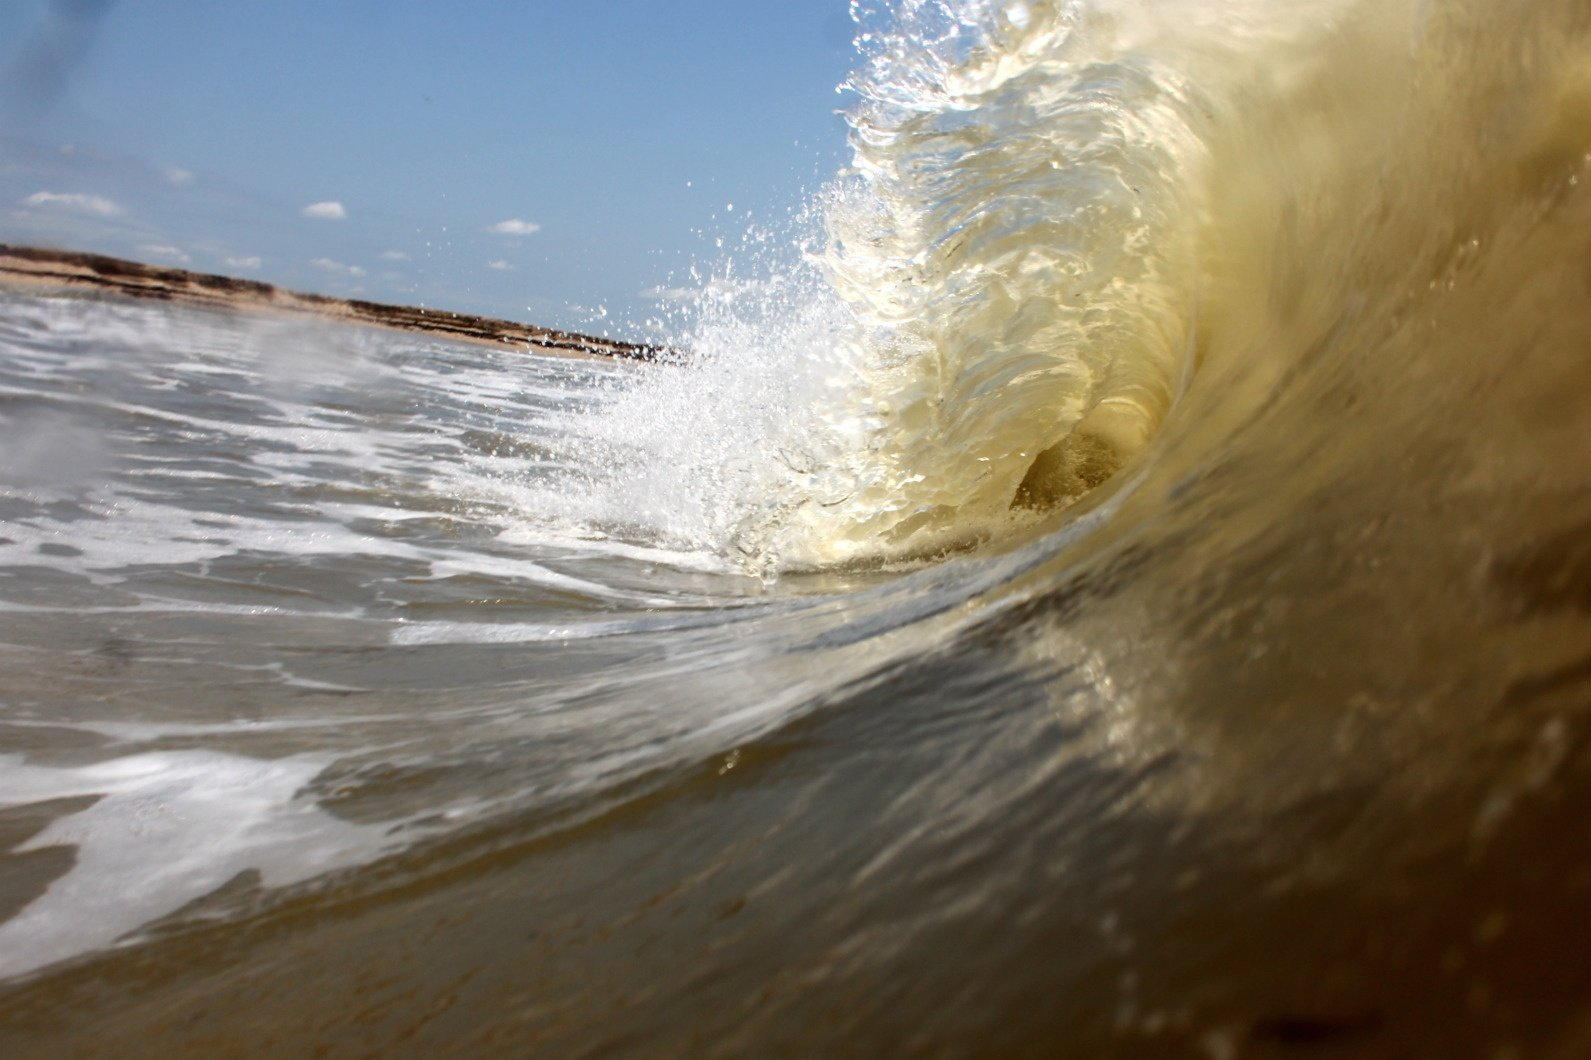 insanedane07's photo of Matagorda